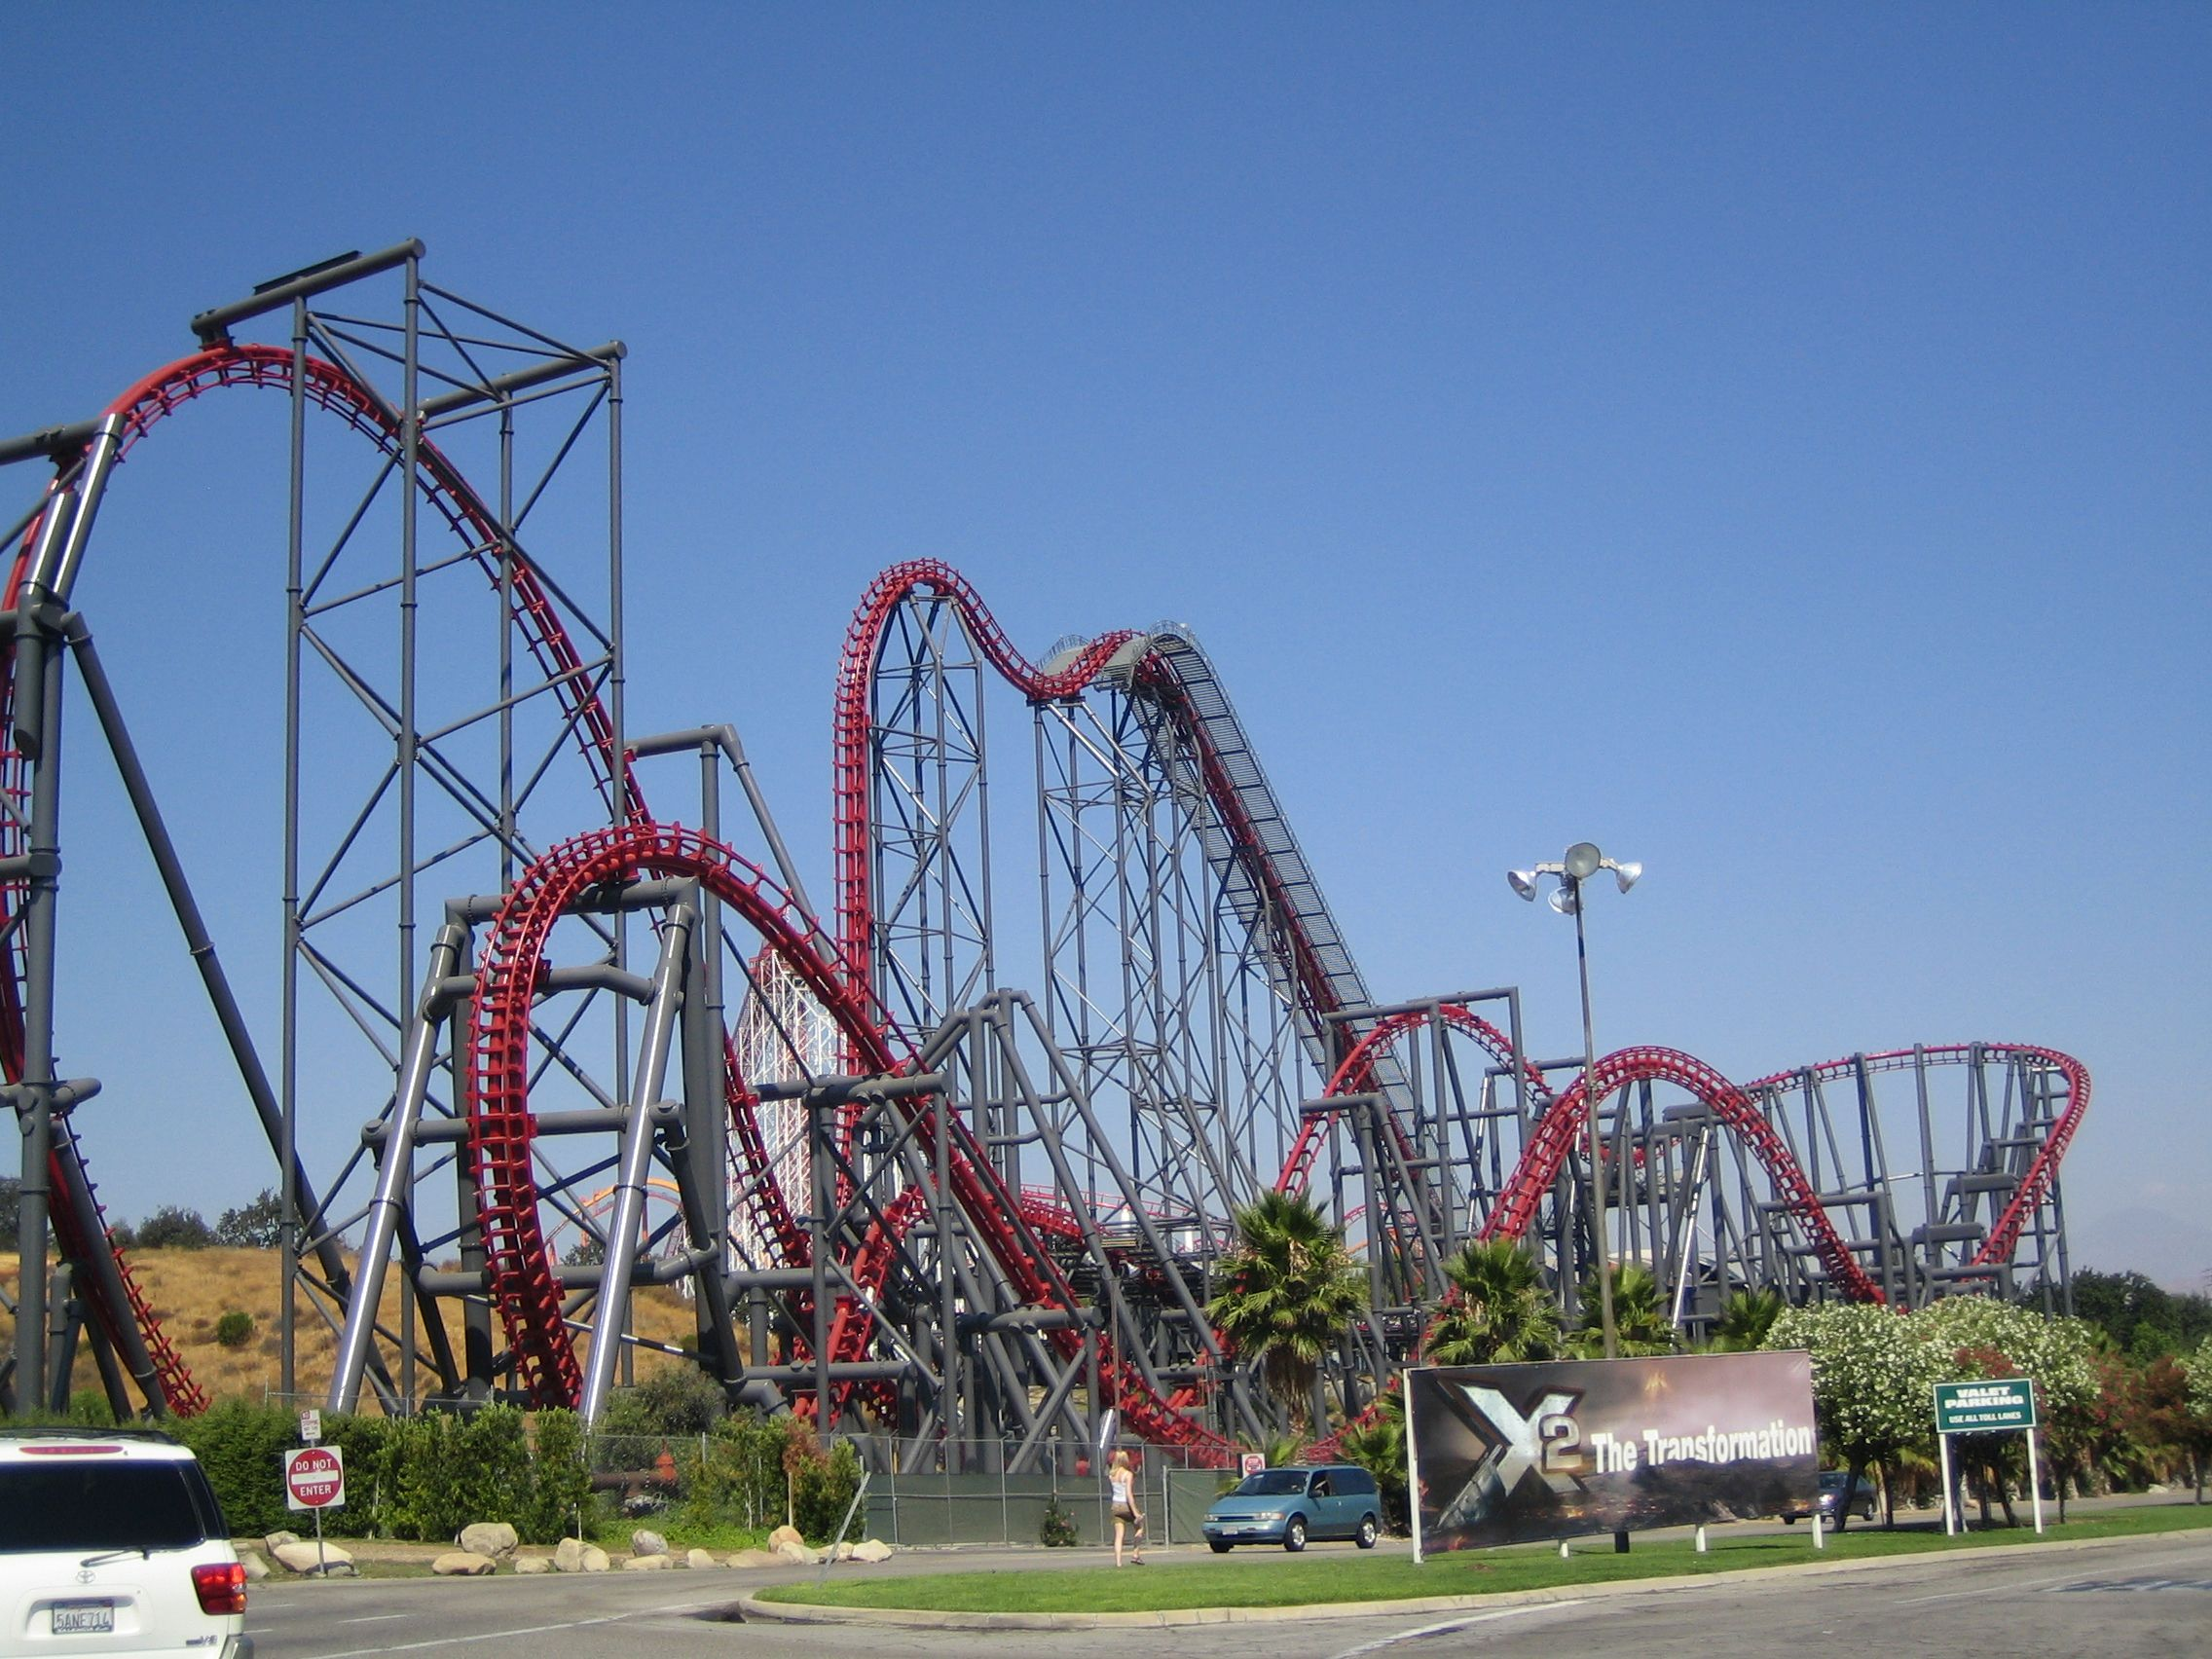 X2 At Six Flags Magic Mountain In Valencia Ca My 2nd Favorite Roller Coaster In The Us Scary Roller Coasters Roller Coaster Thrill Ride